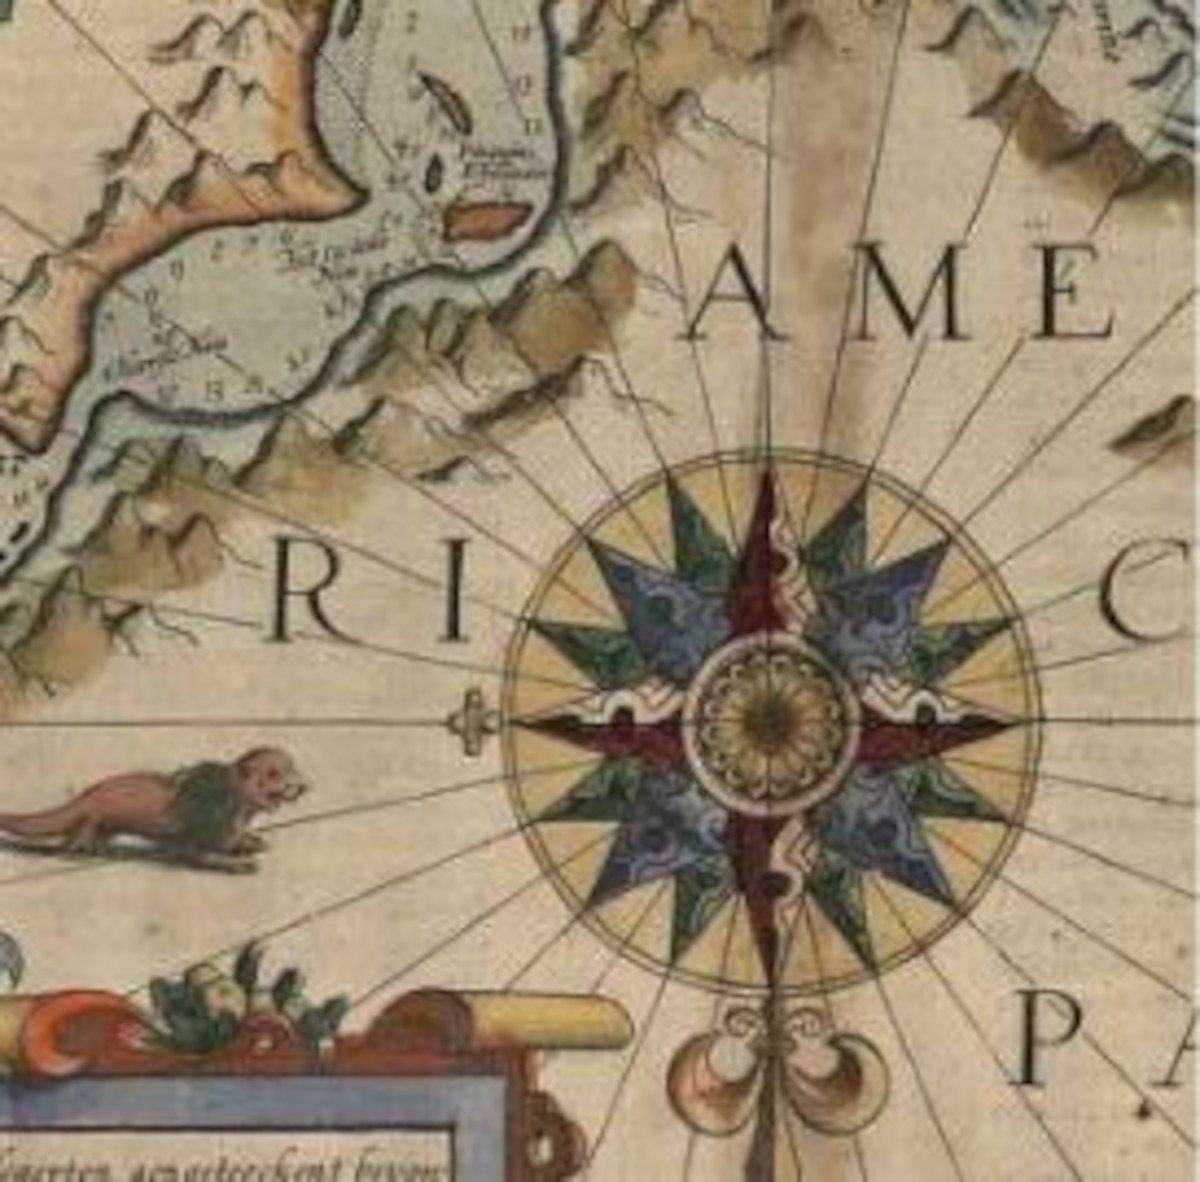 Partial image of a map with a focus on a compass, surrounded by the word 'America'